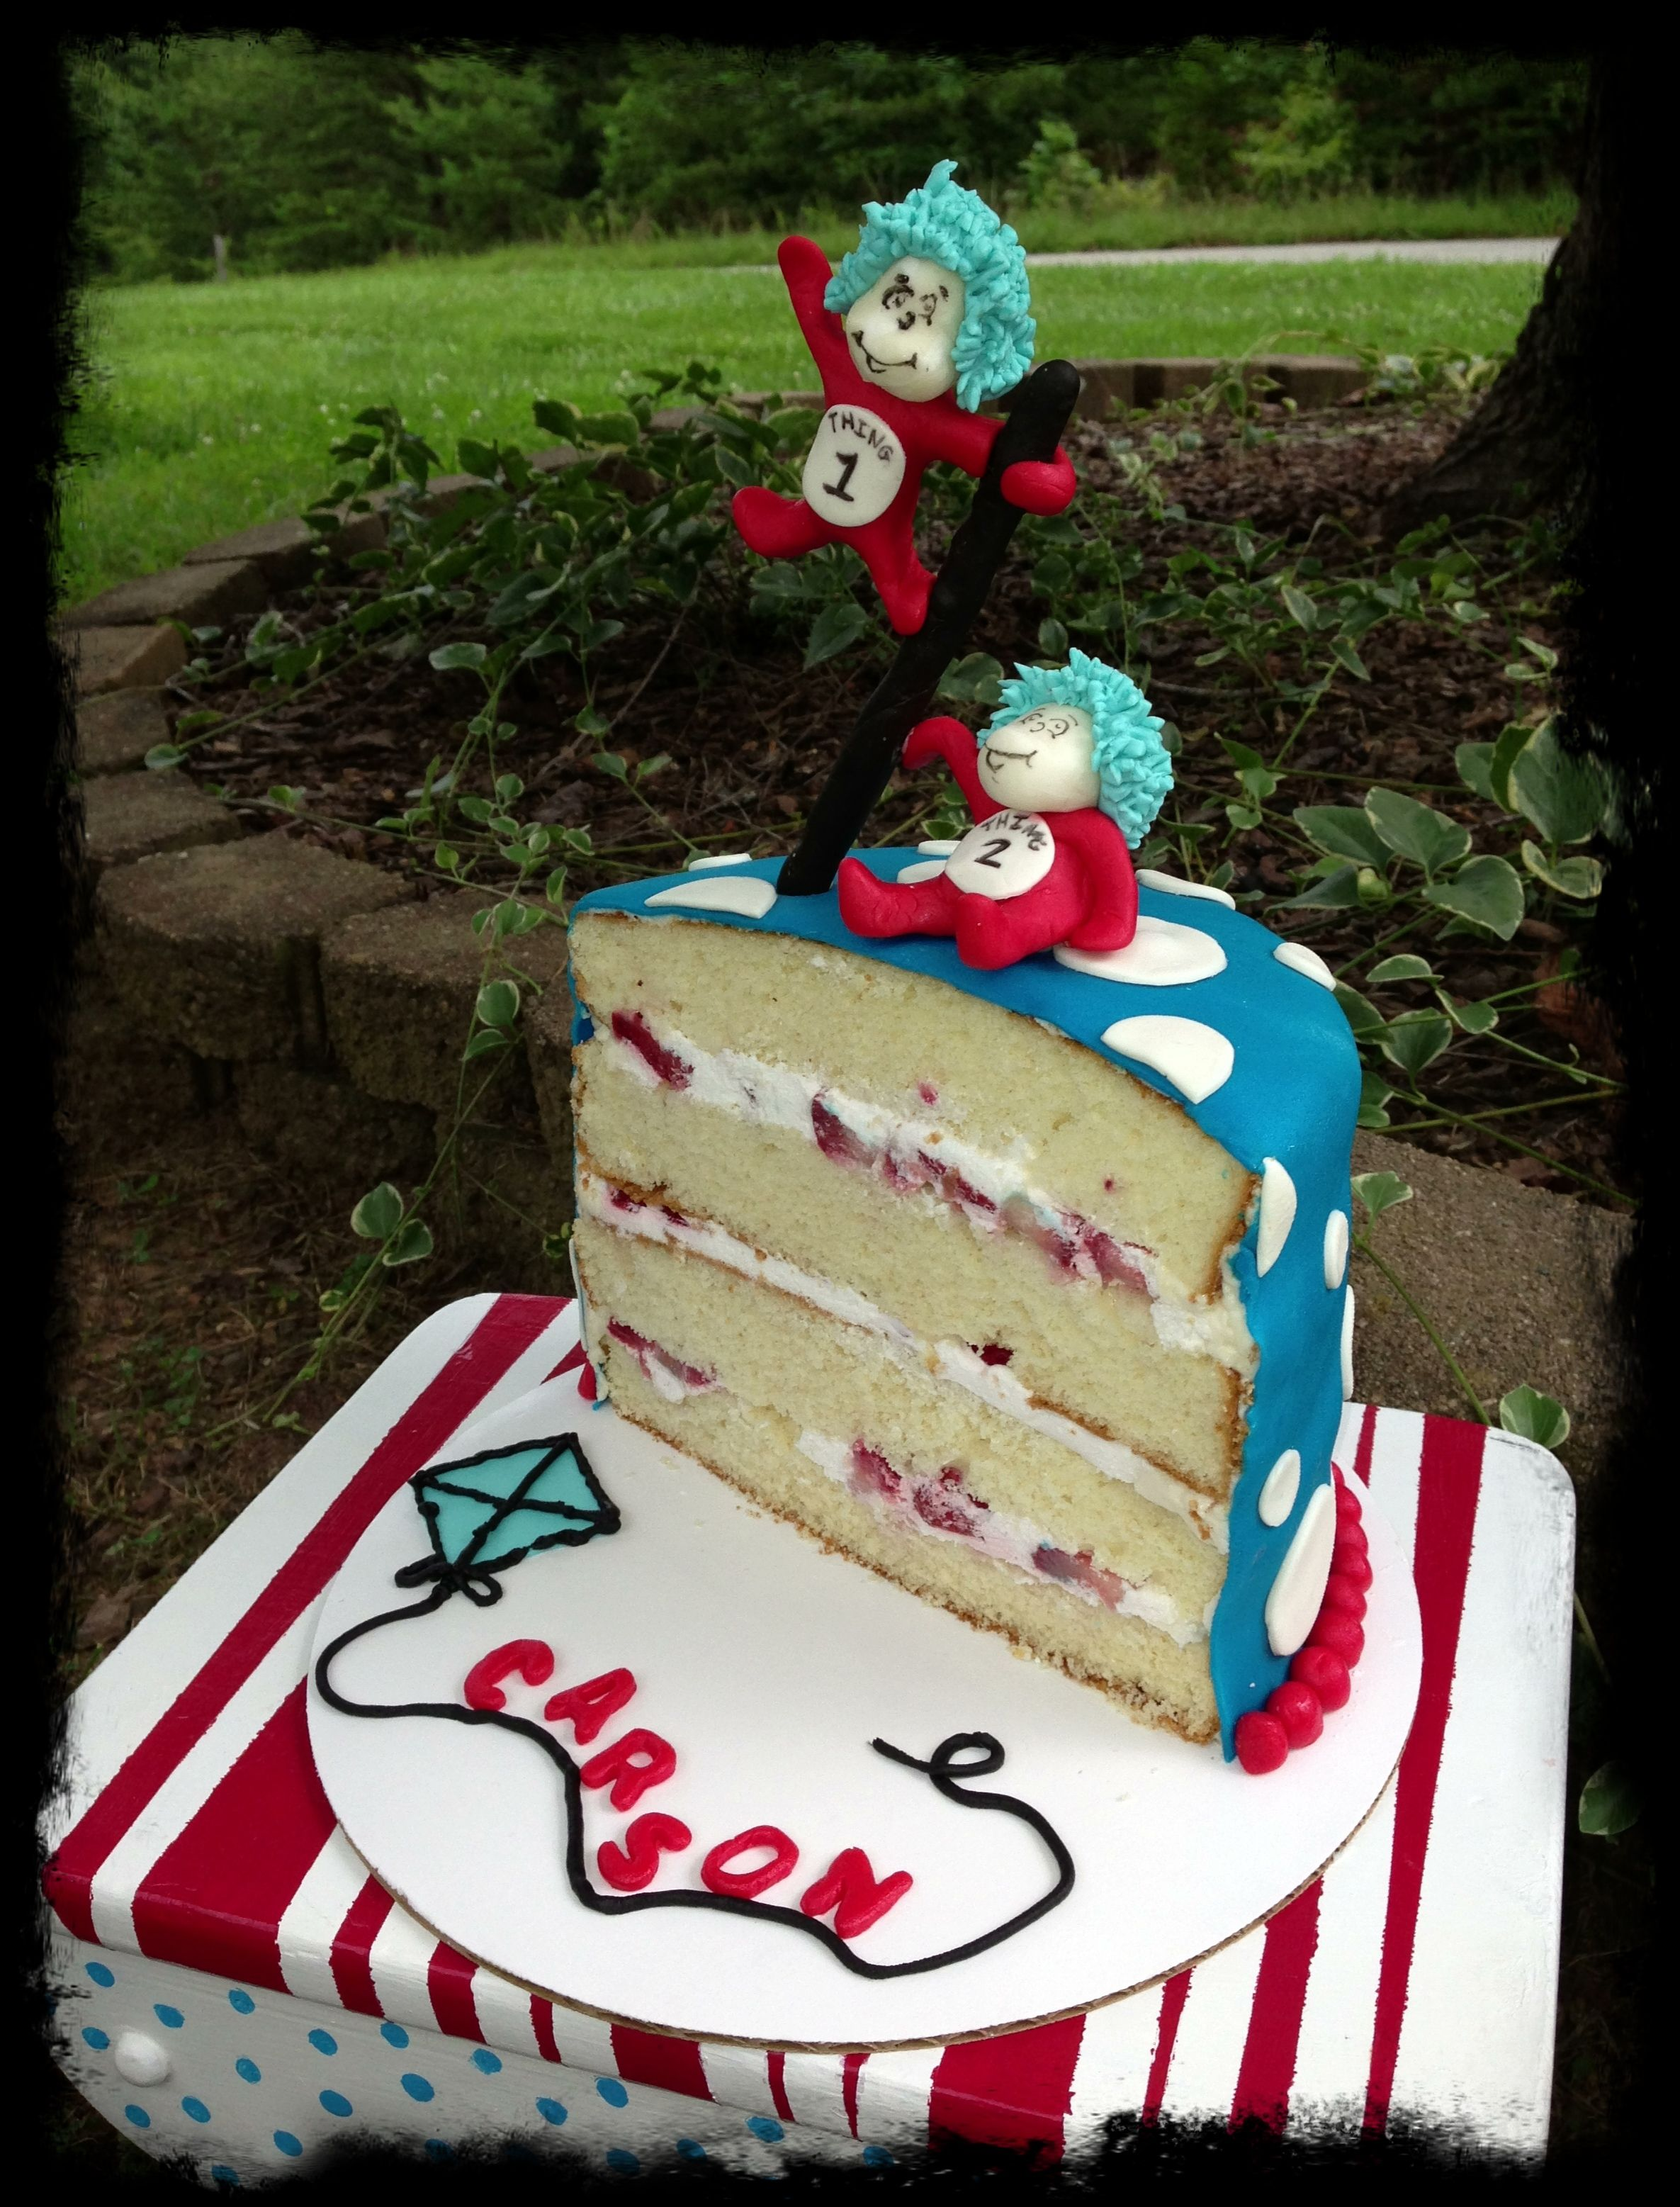 My Baby Boys 1 2 Birthday Cake Dr Seuss Half Birthday Cake With A